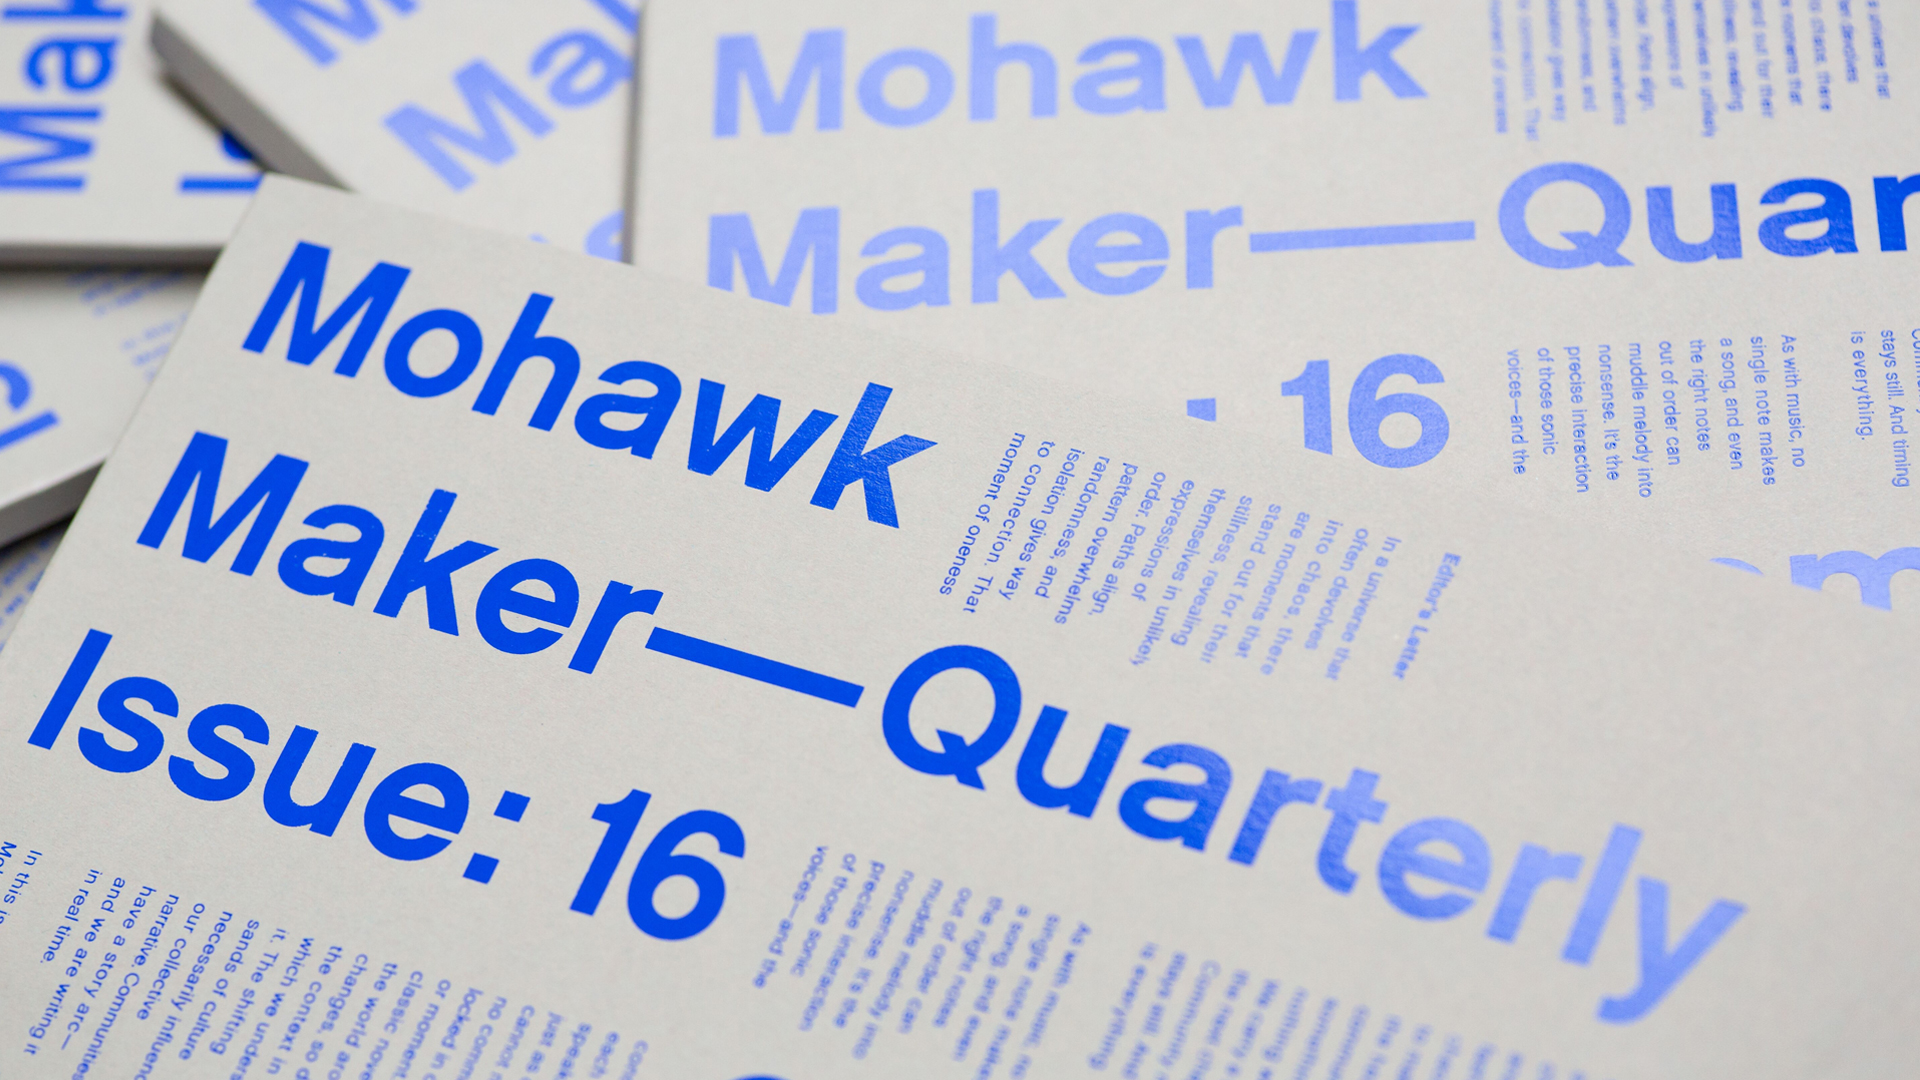 The Mohawk Maker Quarterly Issue No. 16: Community